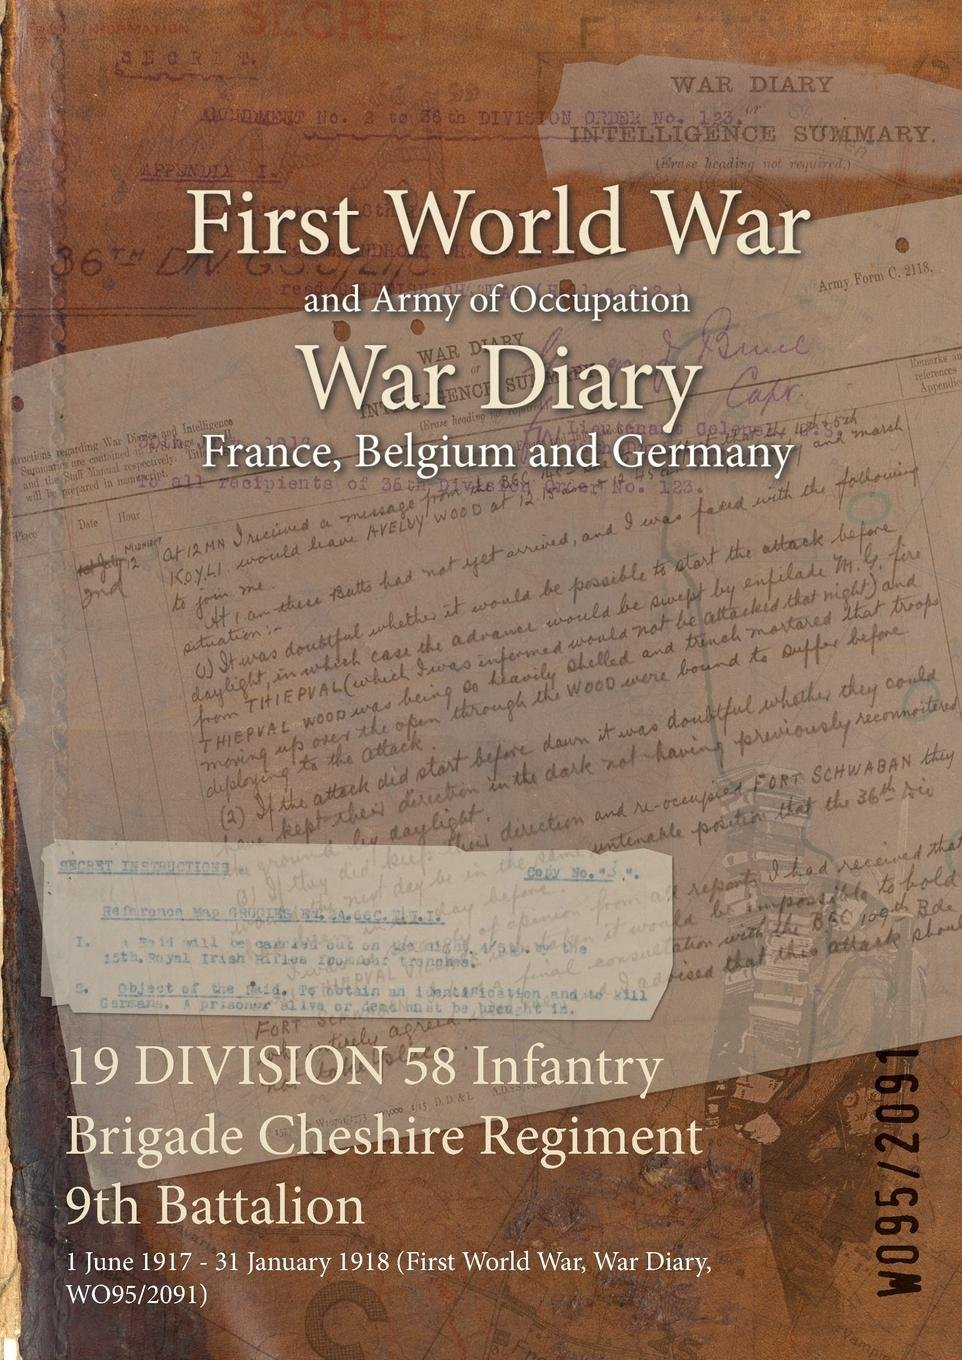 19 Division 58 Infantry Brigade Cheshire Regiment 9th Battalion: 1 June 1917 - 31 January 1918 (First World War, War Diary, Wo95/2091) PDF